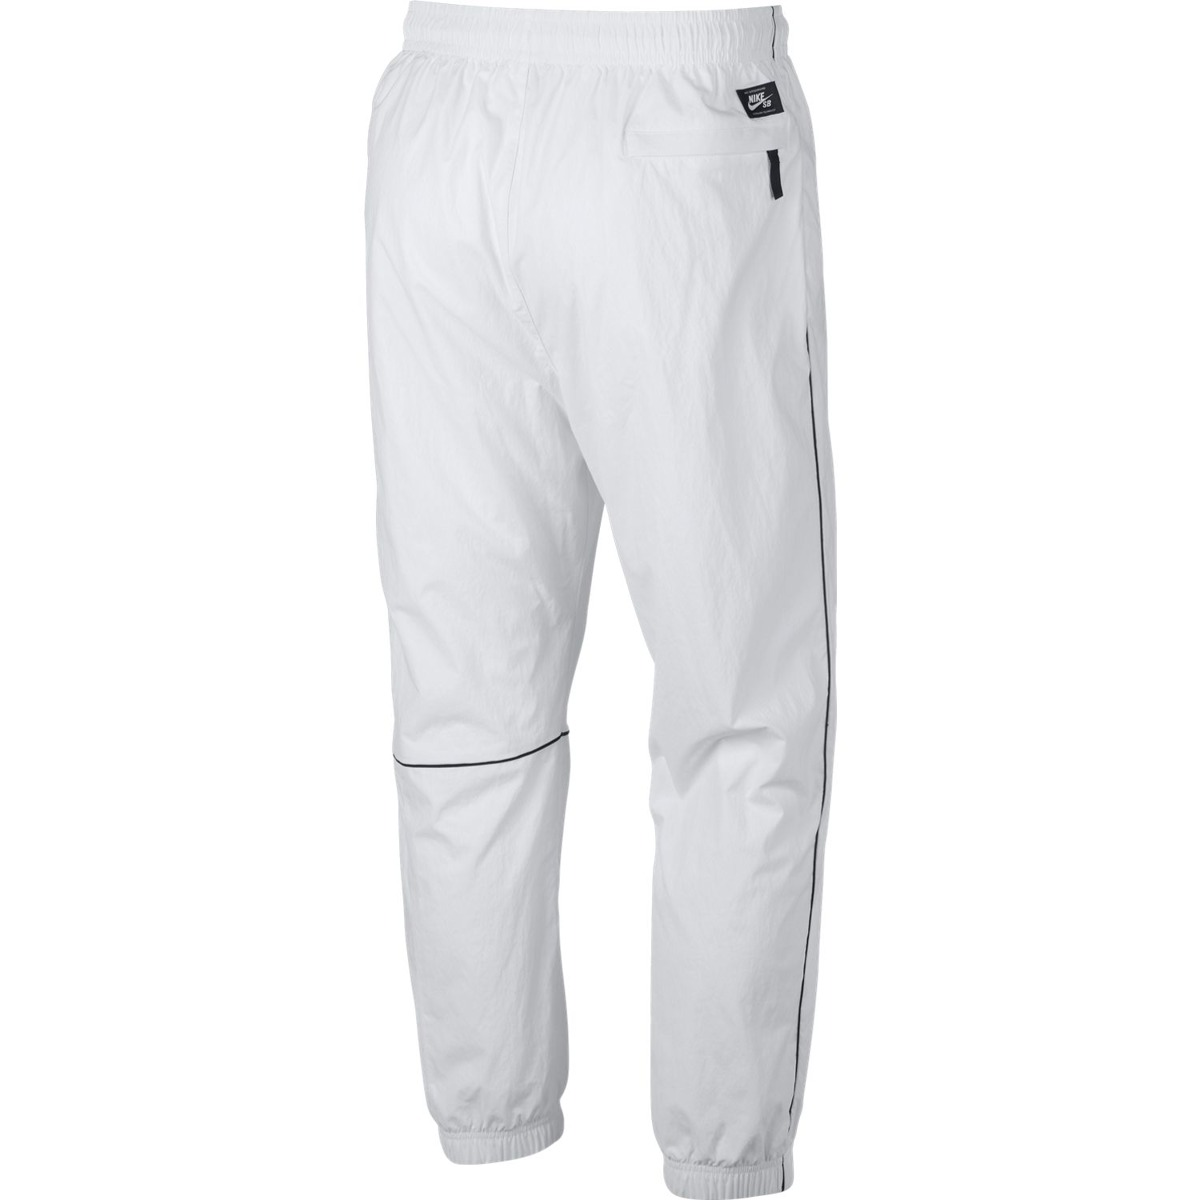 best collection cheapest authentic quality nike Sb Pant Track Swoosh pants White/black/black